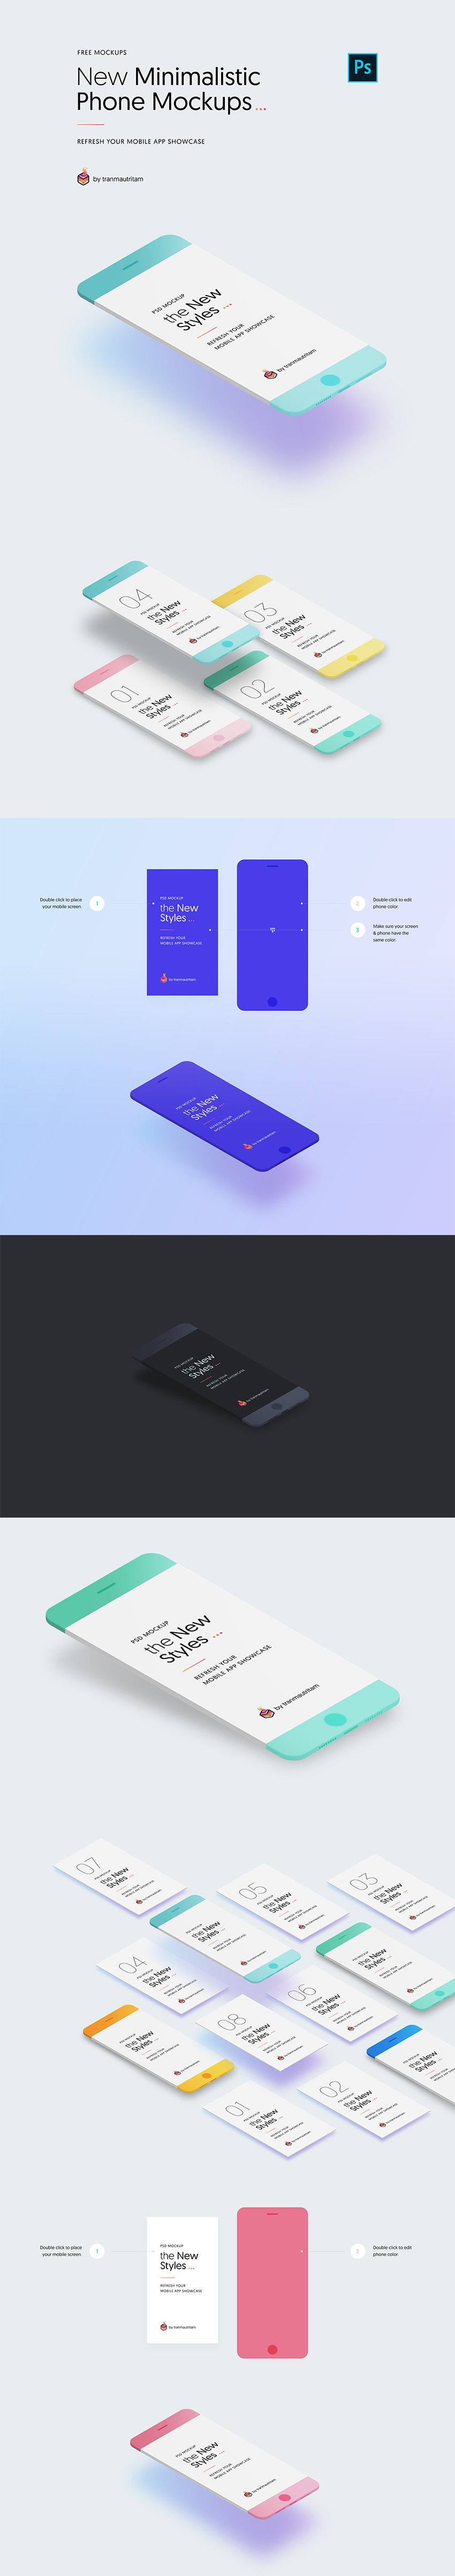 10 Minimal iPhone Mockups for PSD